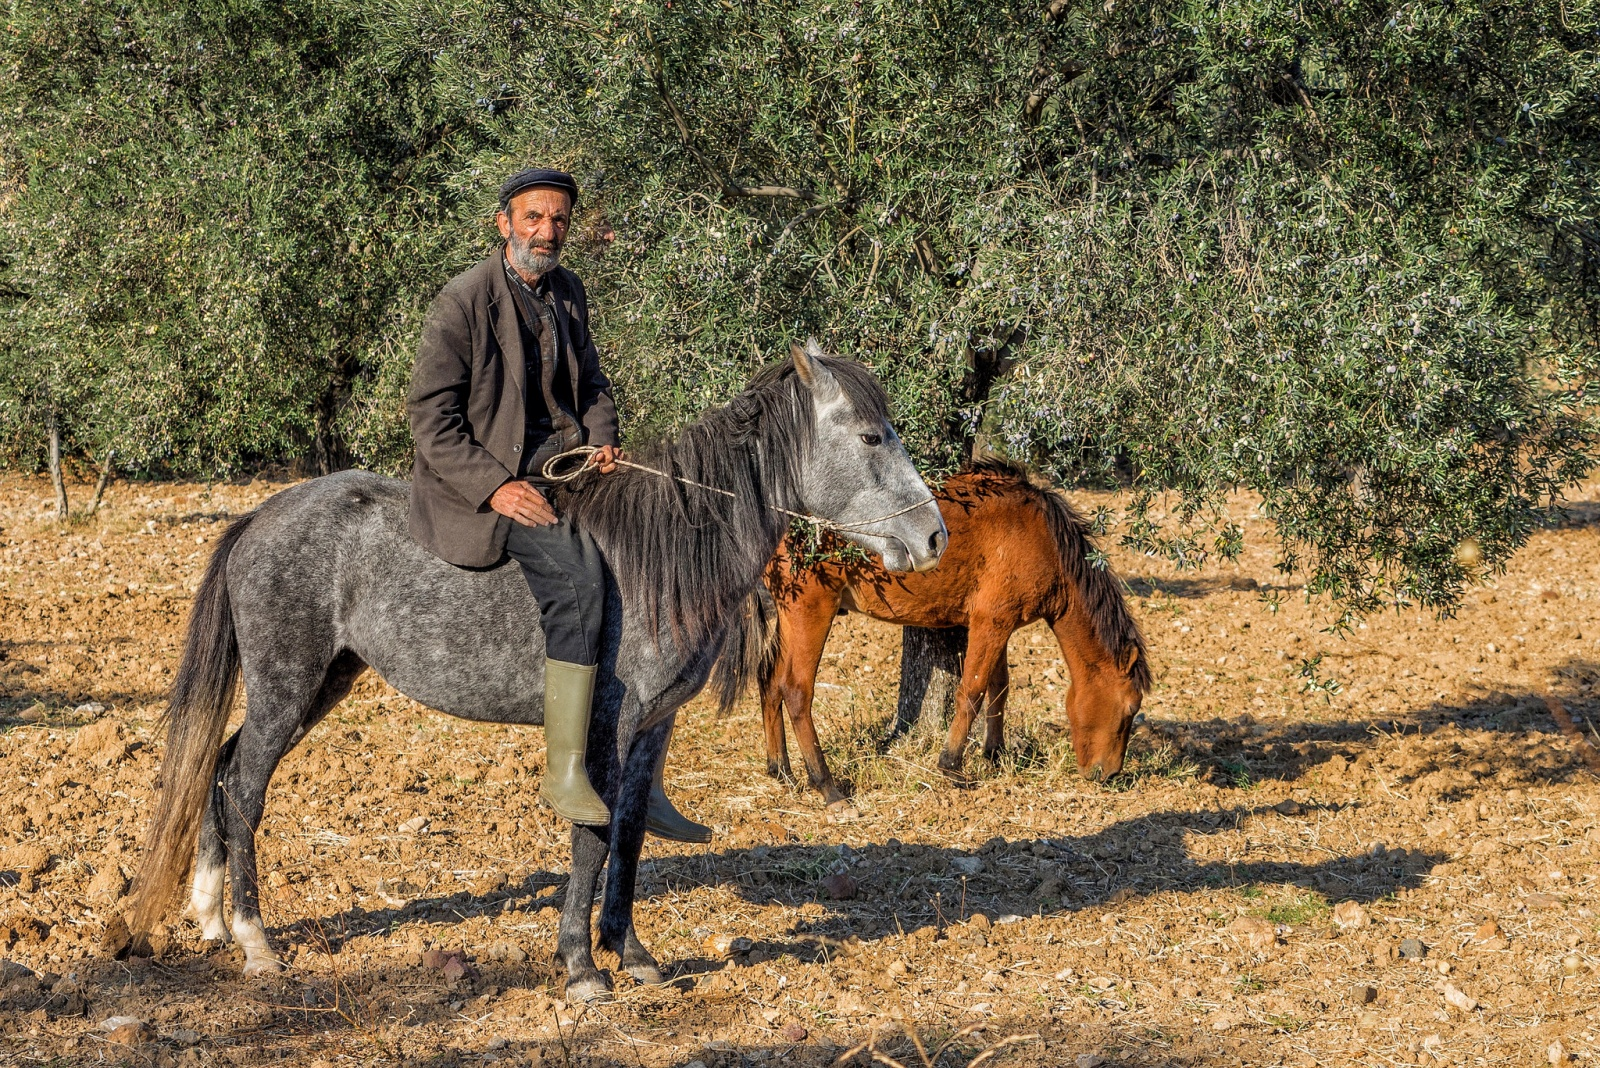 Turkish farmer and his horses